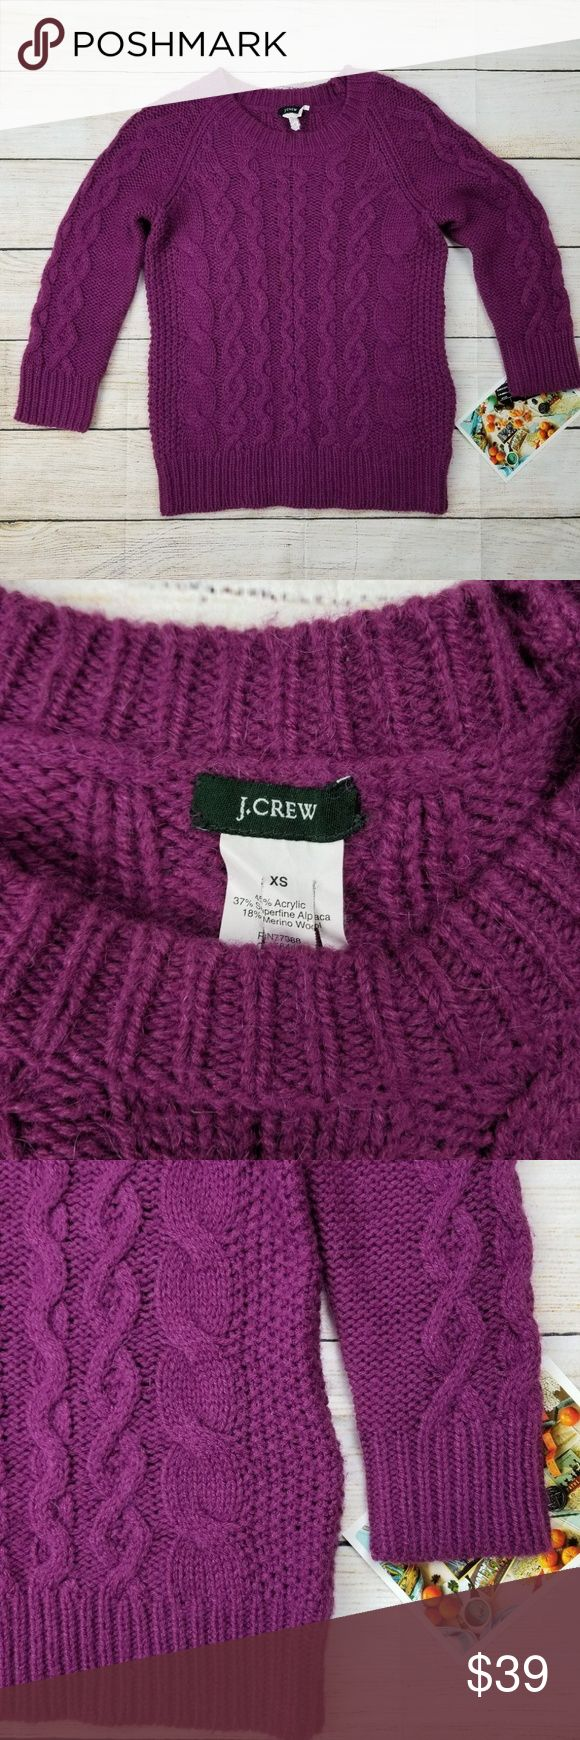 """J. Crew purple fisherman cabled sweater XS J Crew fisherman sweater in great condition. Minor use/wear.   Measurements approx (taken with item laid flat across side to side) Chest 16.5"""" Sleeve (from top of neckline) 20"""" Length 23""""  ✔For the best results I recommend comparing the measurements of your favorite fitting sweater or a similar item to the measurements provided above   From a smoke-free home J. Crew Sweaters Crew & Scoop Necks"""